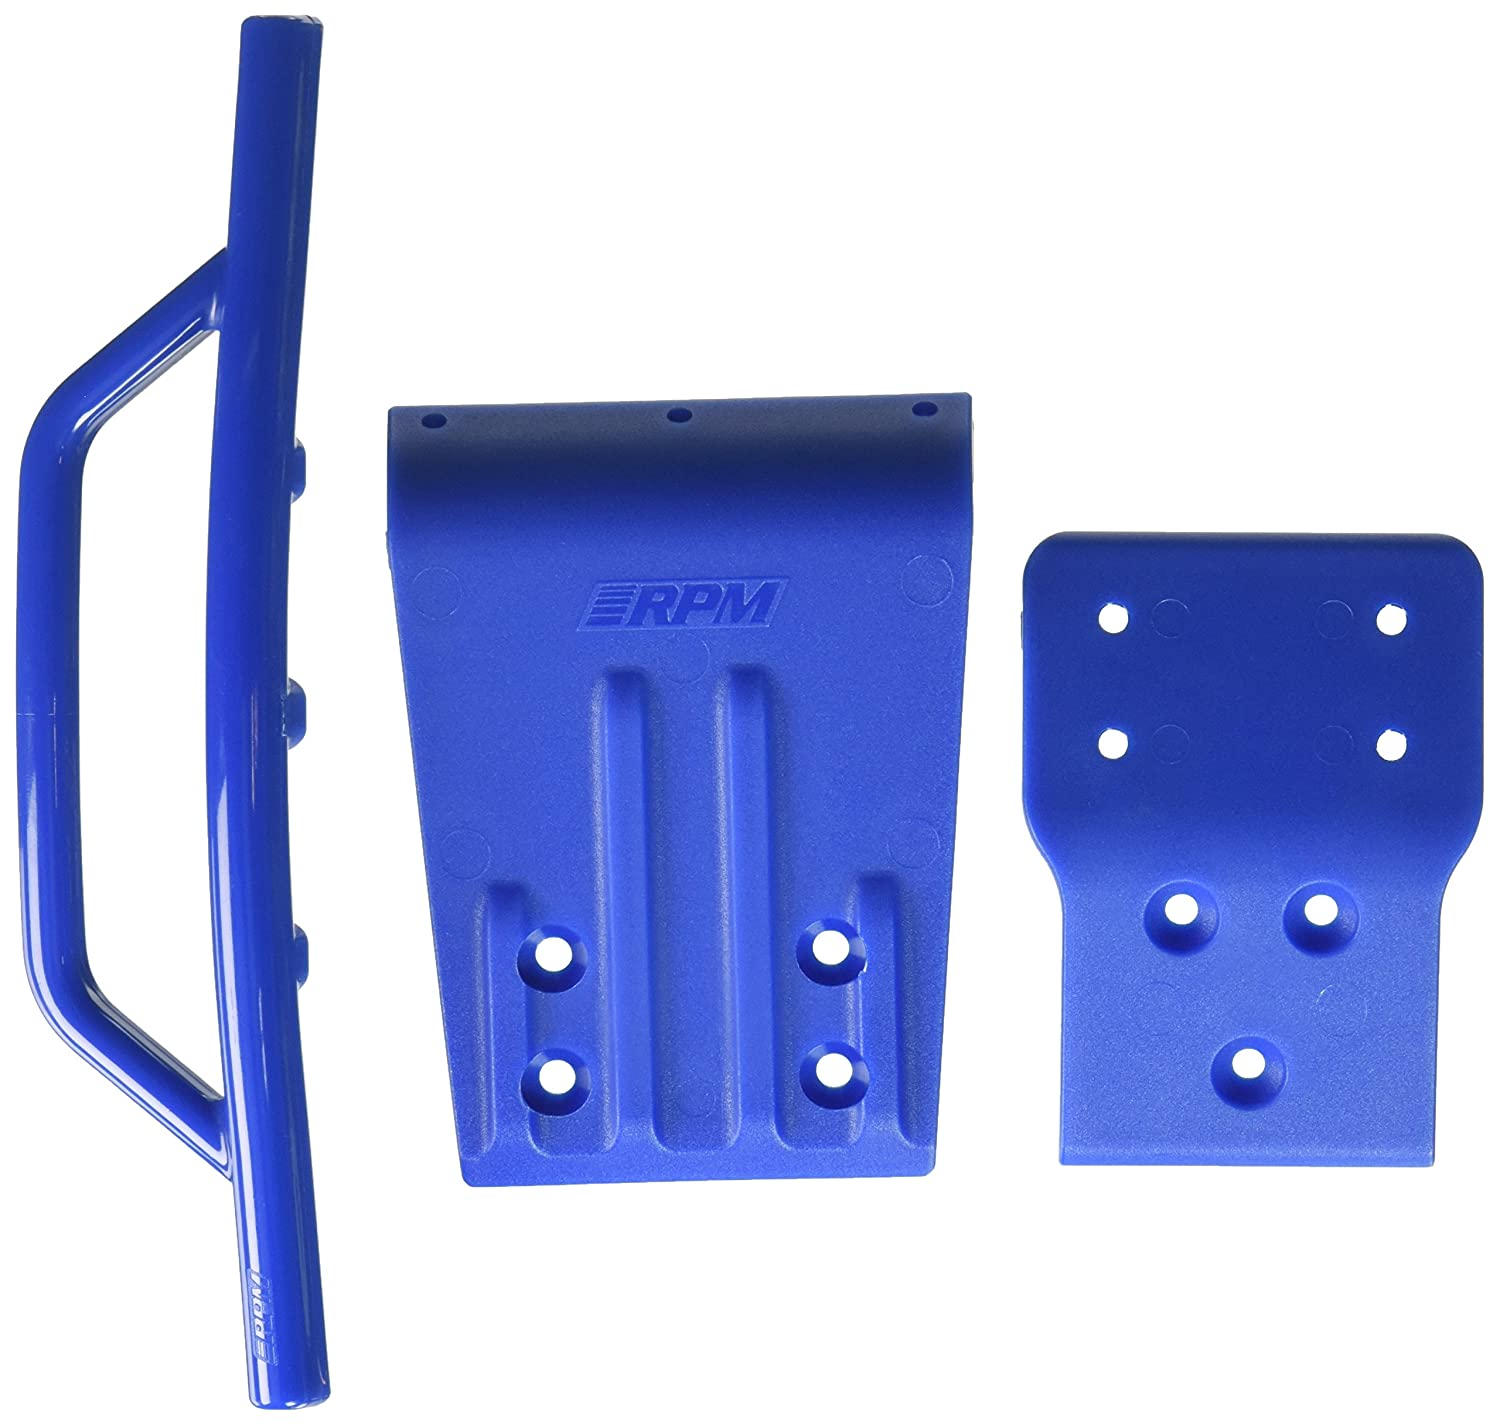 RPM Traxxas Slash 4x4 Front Bumper and Skid Plate, Blue